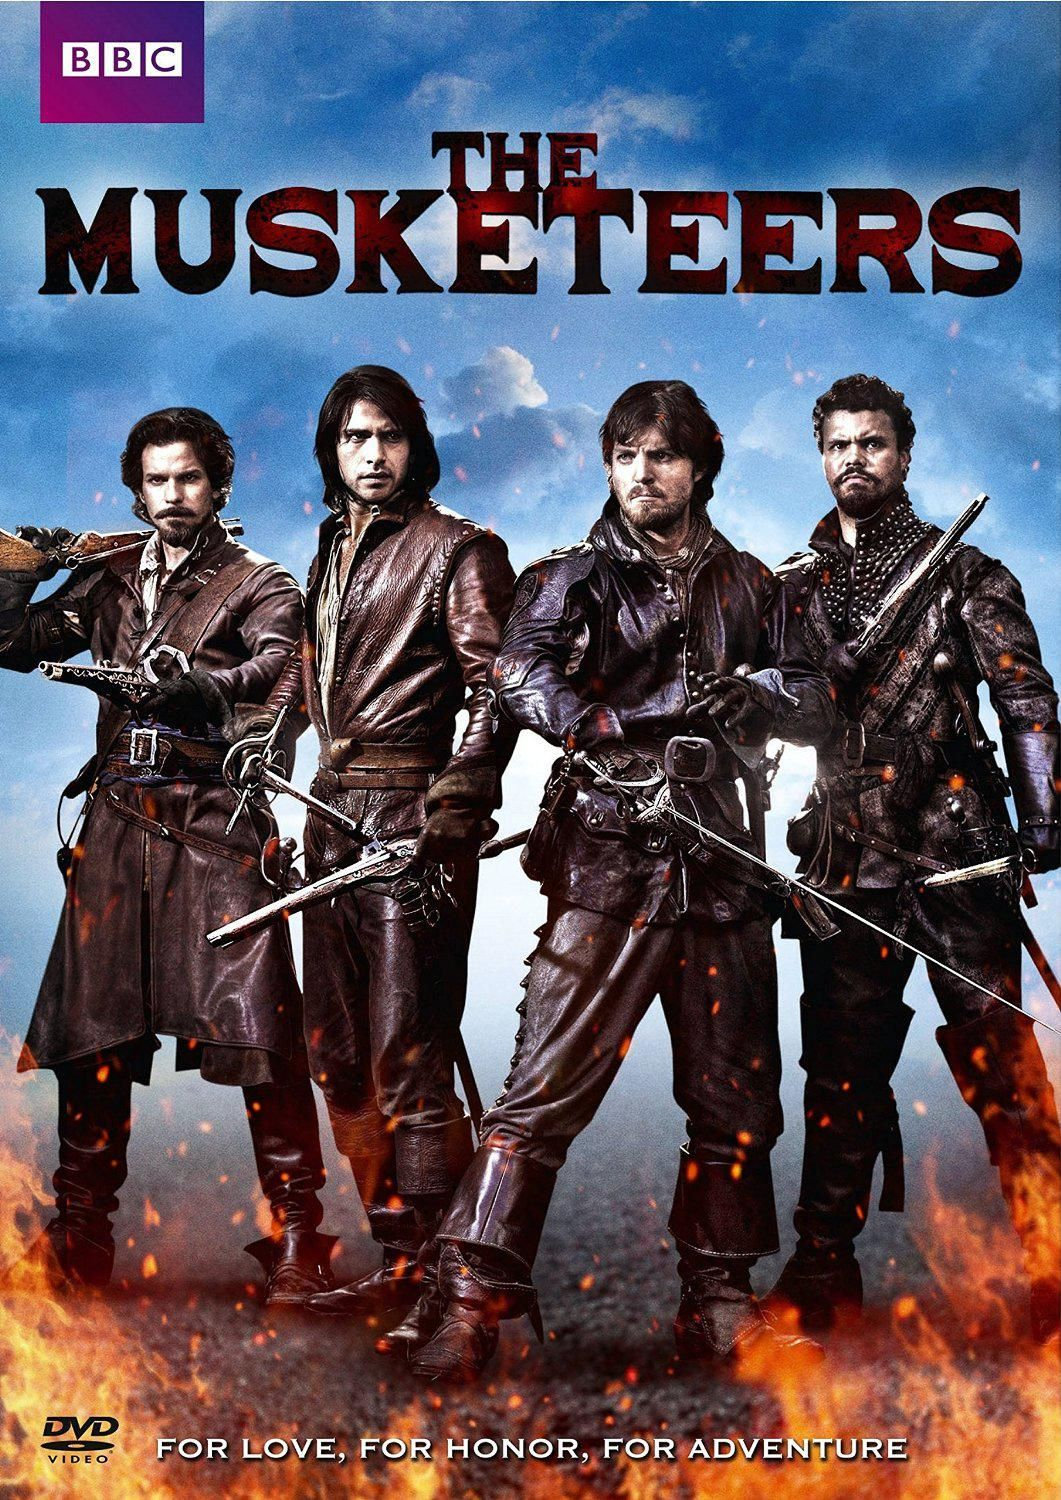 The Musketeers Saison One Vf En Streaming Complet Regarder Gratuitement The Musketeers Saison One Vf